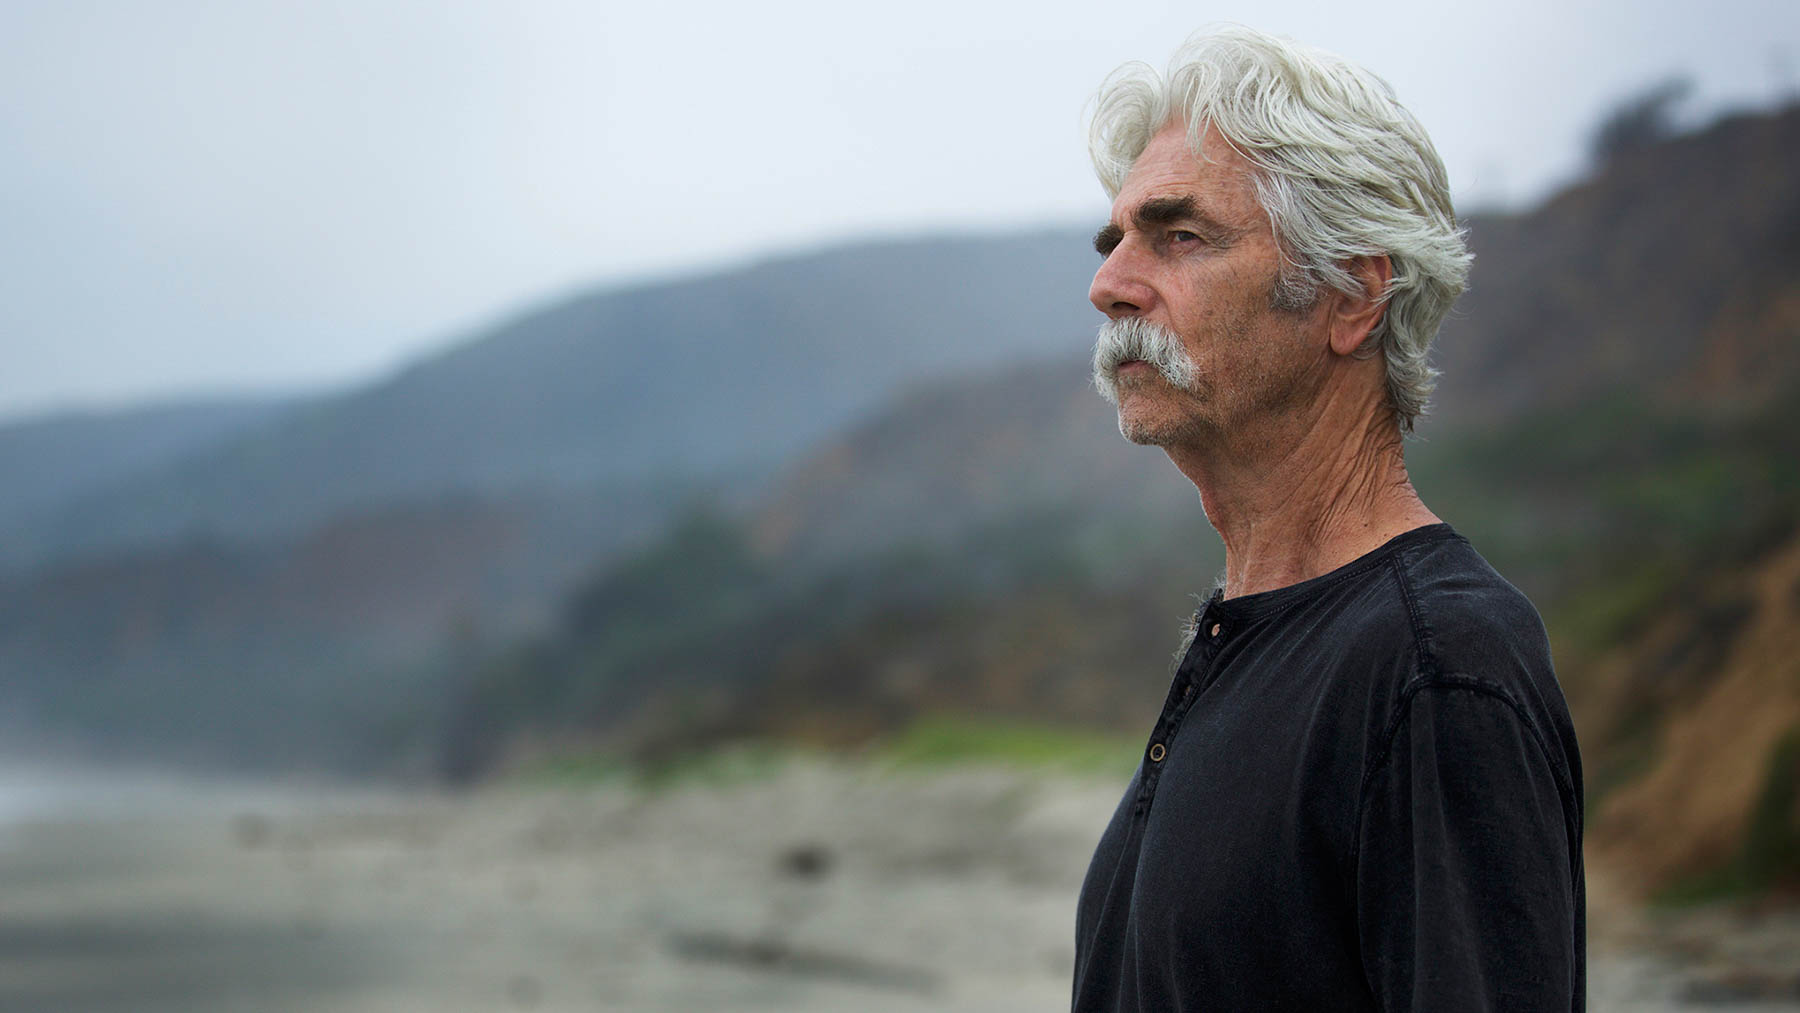 Sam Elliott appears in The Hero by Brett Haley, an official selection of the U.S. Dramatic Competition at the 2017 Sundance Film Festival. © 2016 Sundance Institute | photo by Beth Dubber.